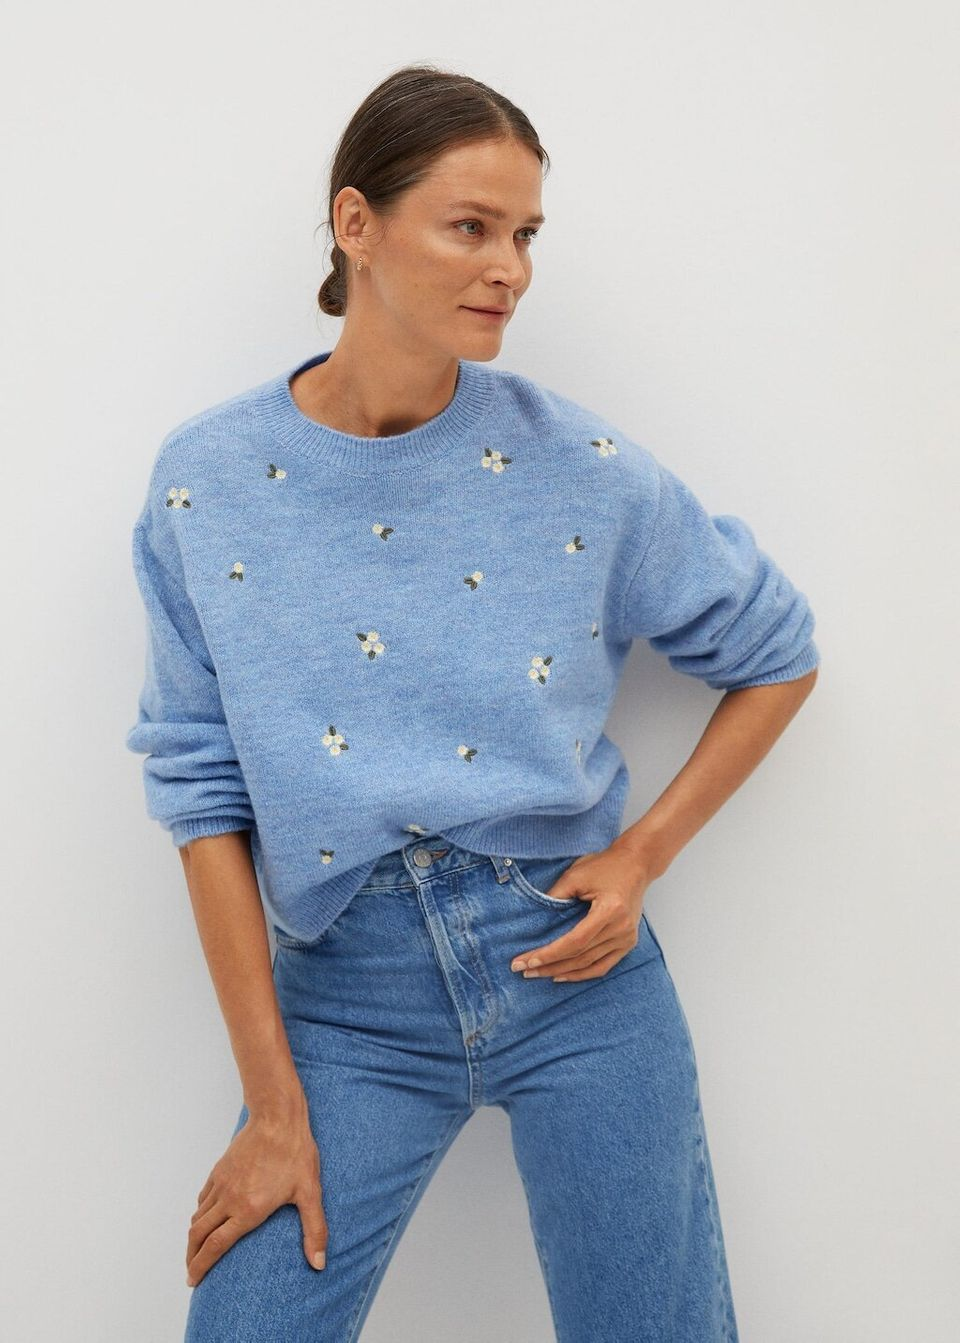 25 Cozy Sweaters Under $60 Perfect For This Fall 12